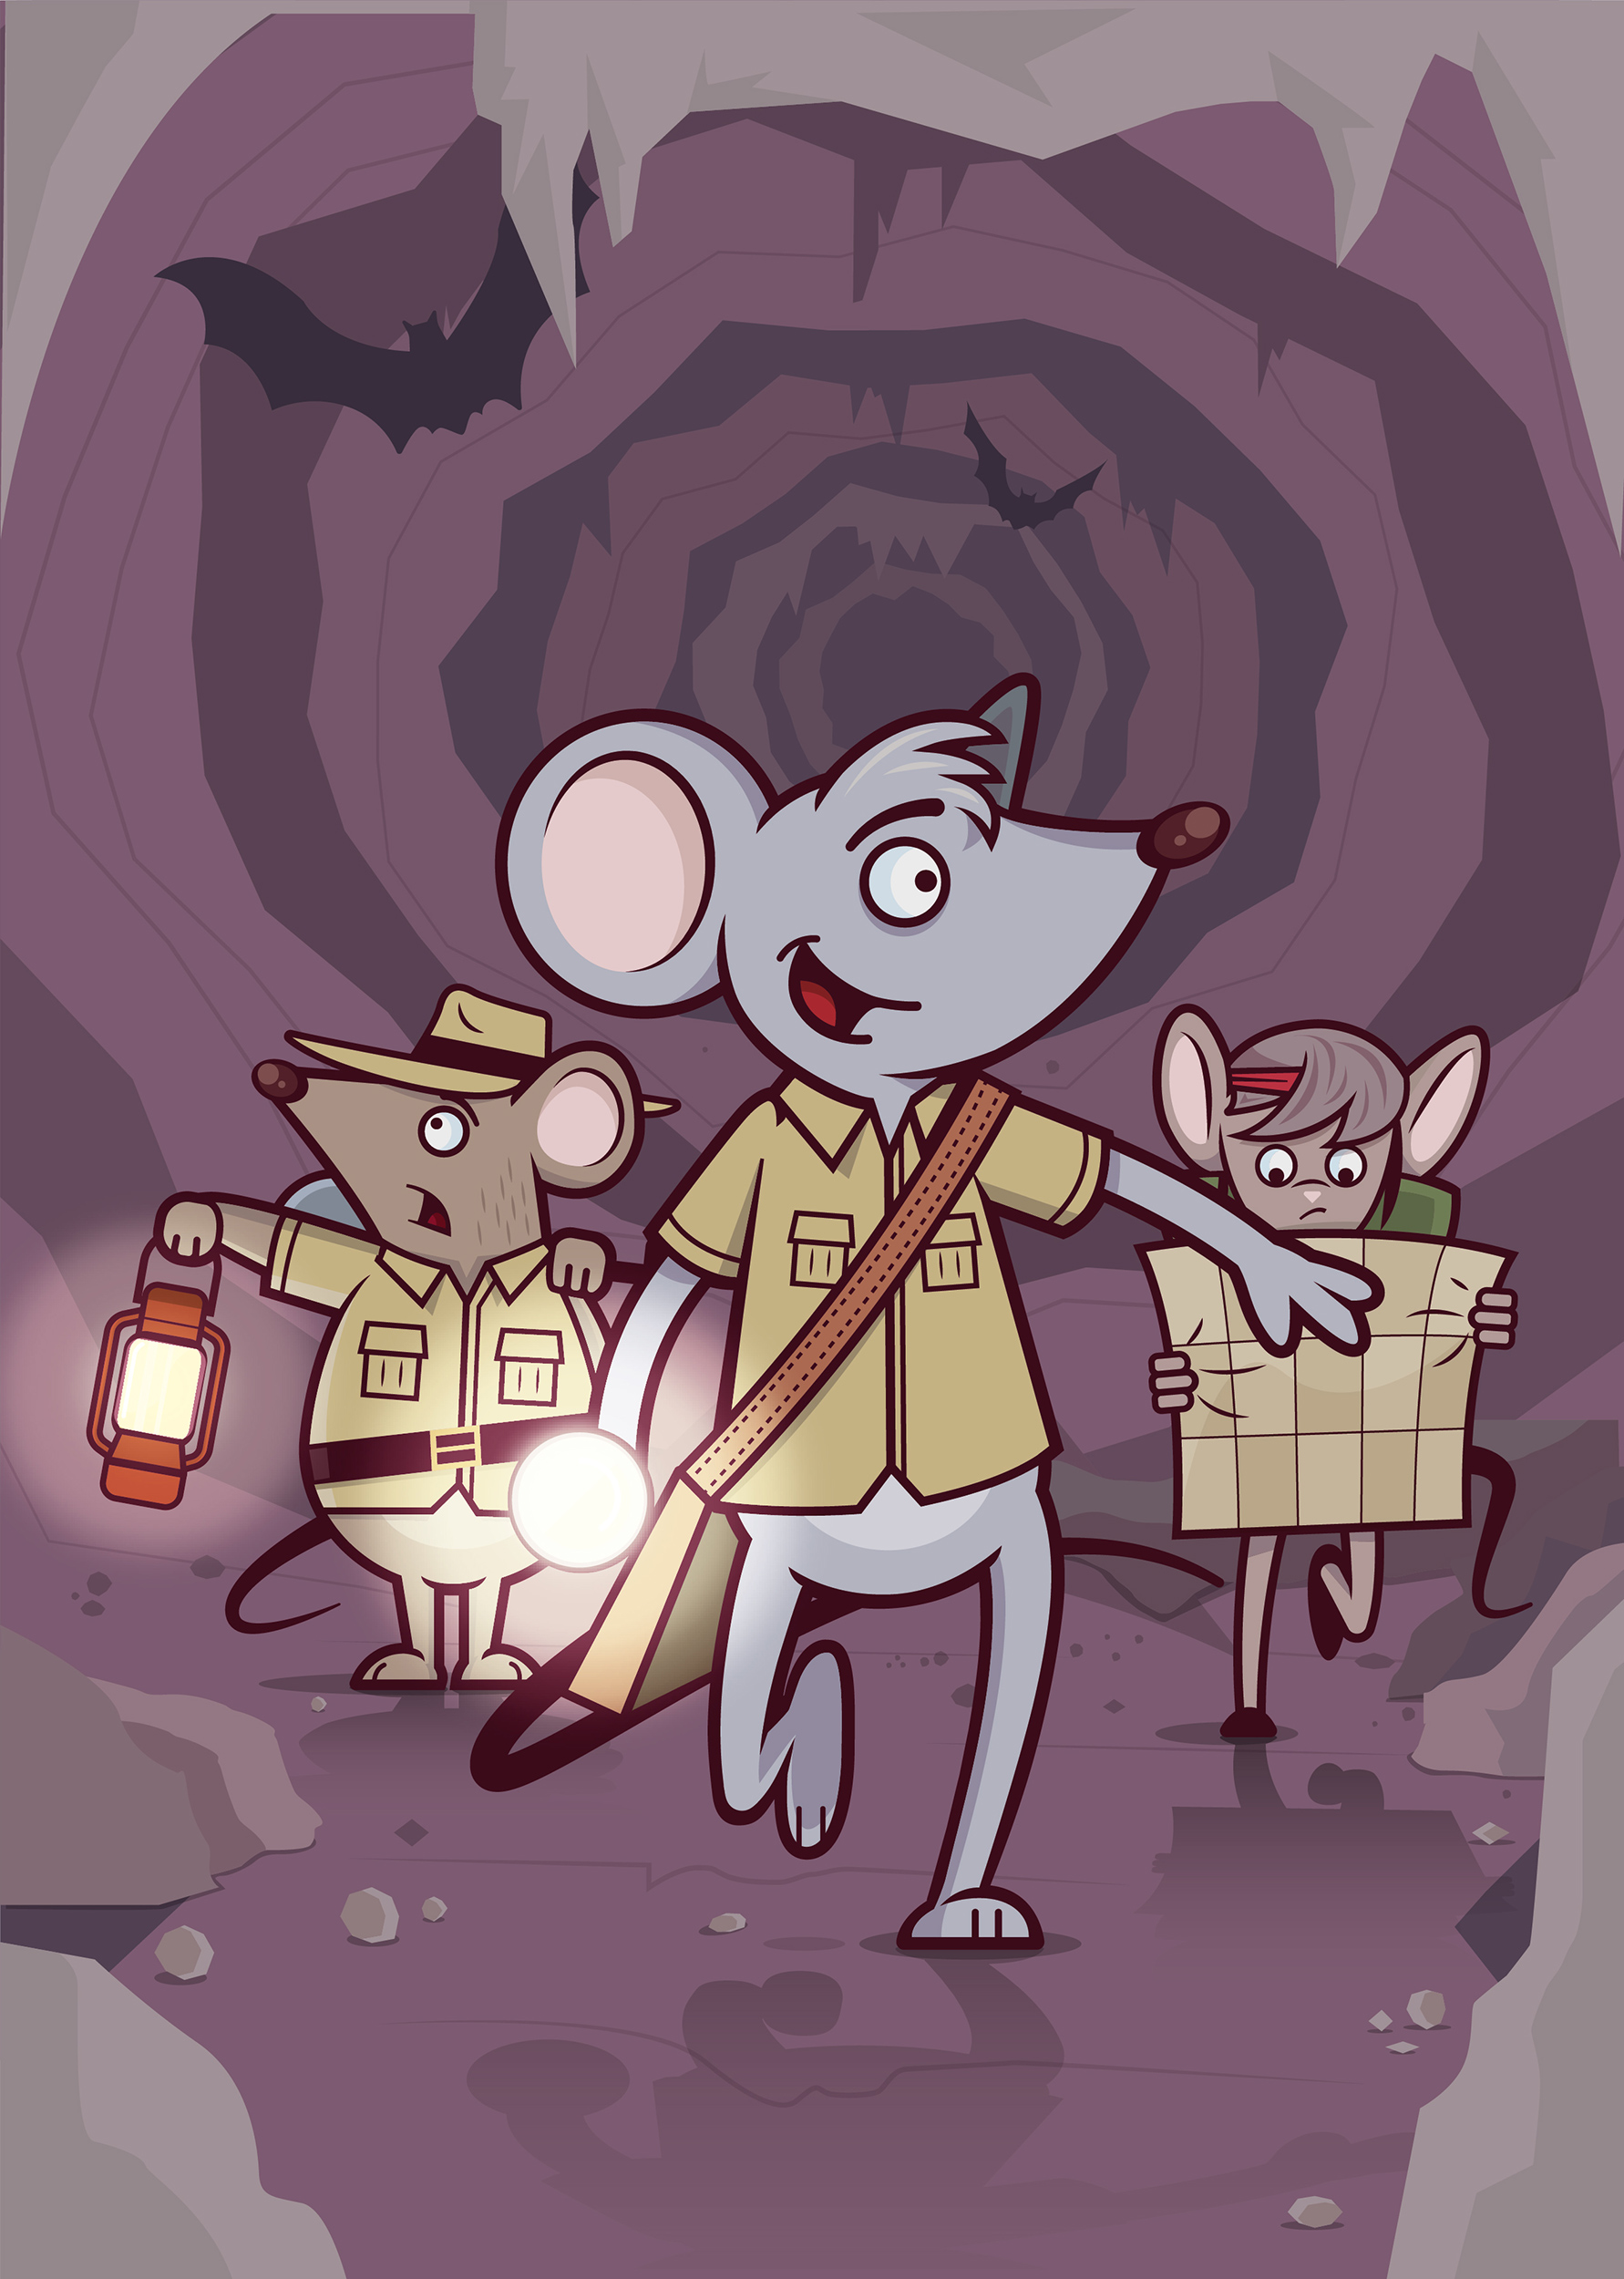 D1211_Final-Cave_Mice-illustration_RGB-01